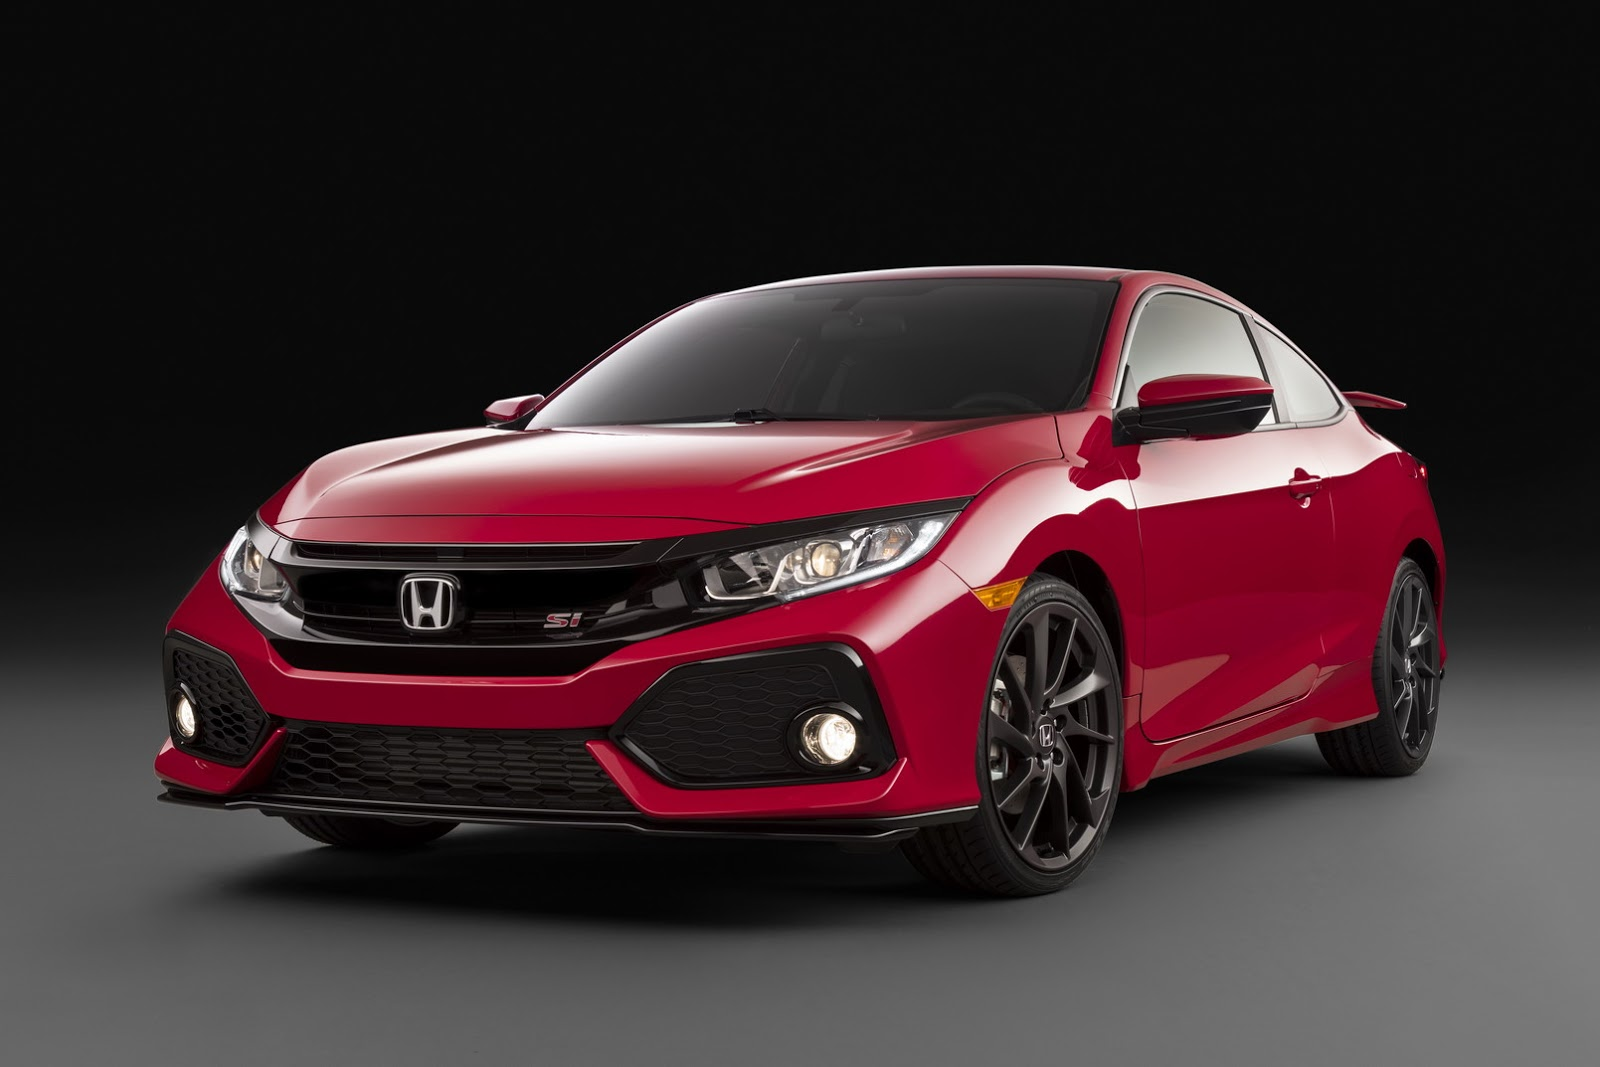 Honda Confirms 2017 Civic Si Will Get 1.5 VTEC Turbo ...